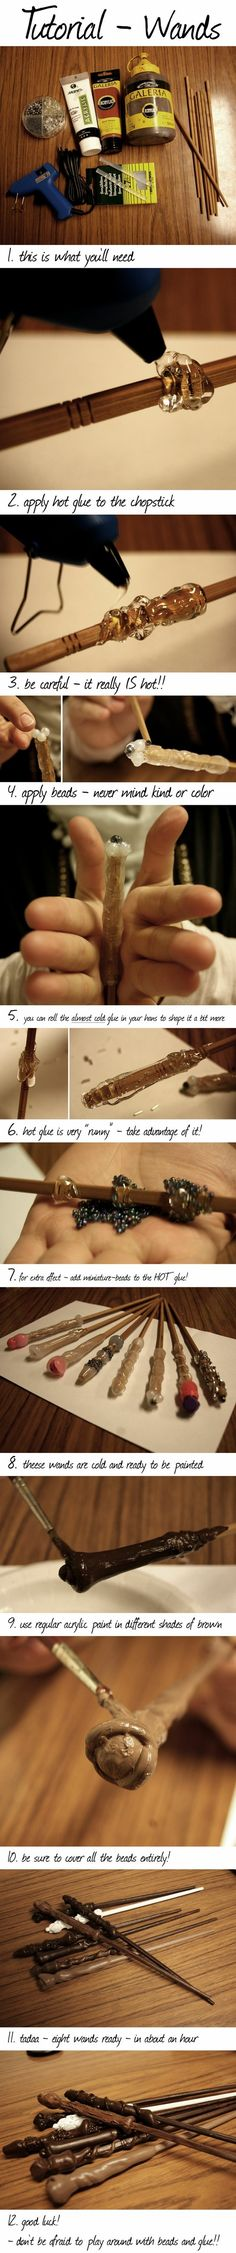 Making wands...